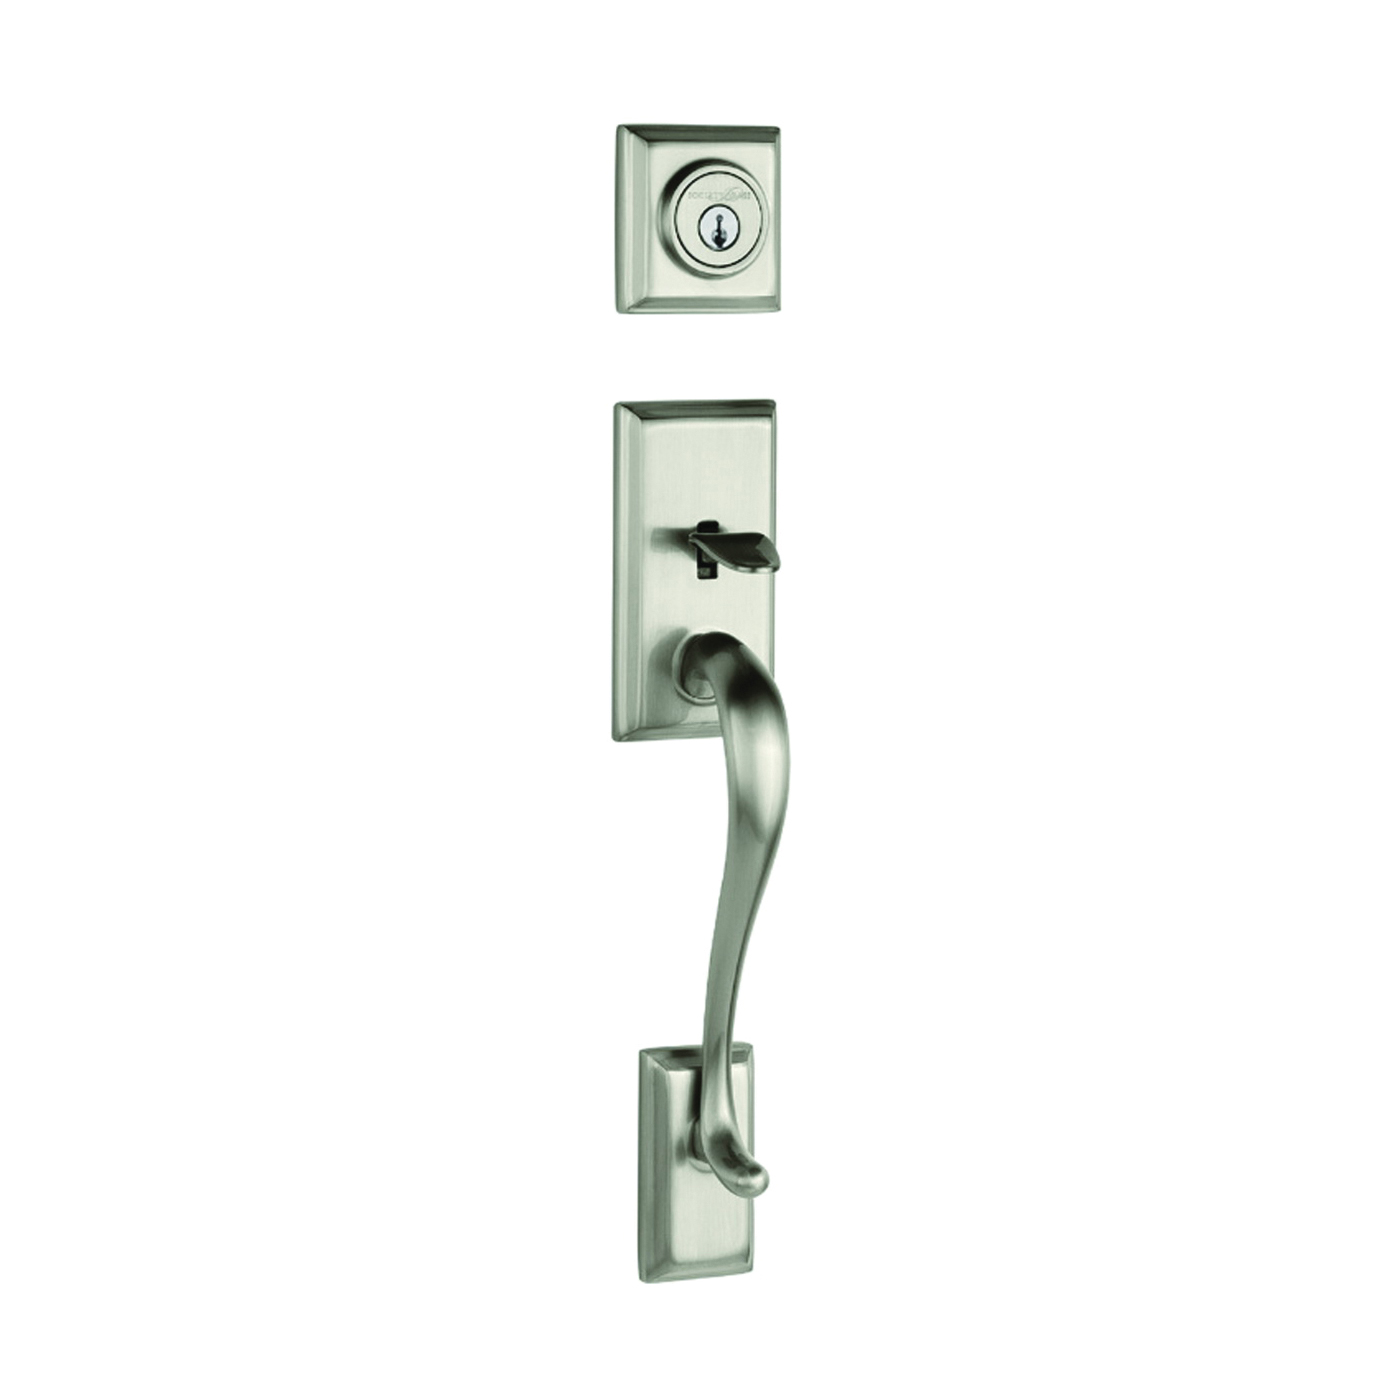 Picture of Kwikset 800HE-15 SMT Handleset, 1 Grade, Brass, Satin Nickel, 2-3/8 x 2-3/4 in Backset, KW1 Keyway, Residential